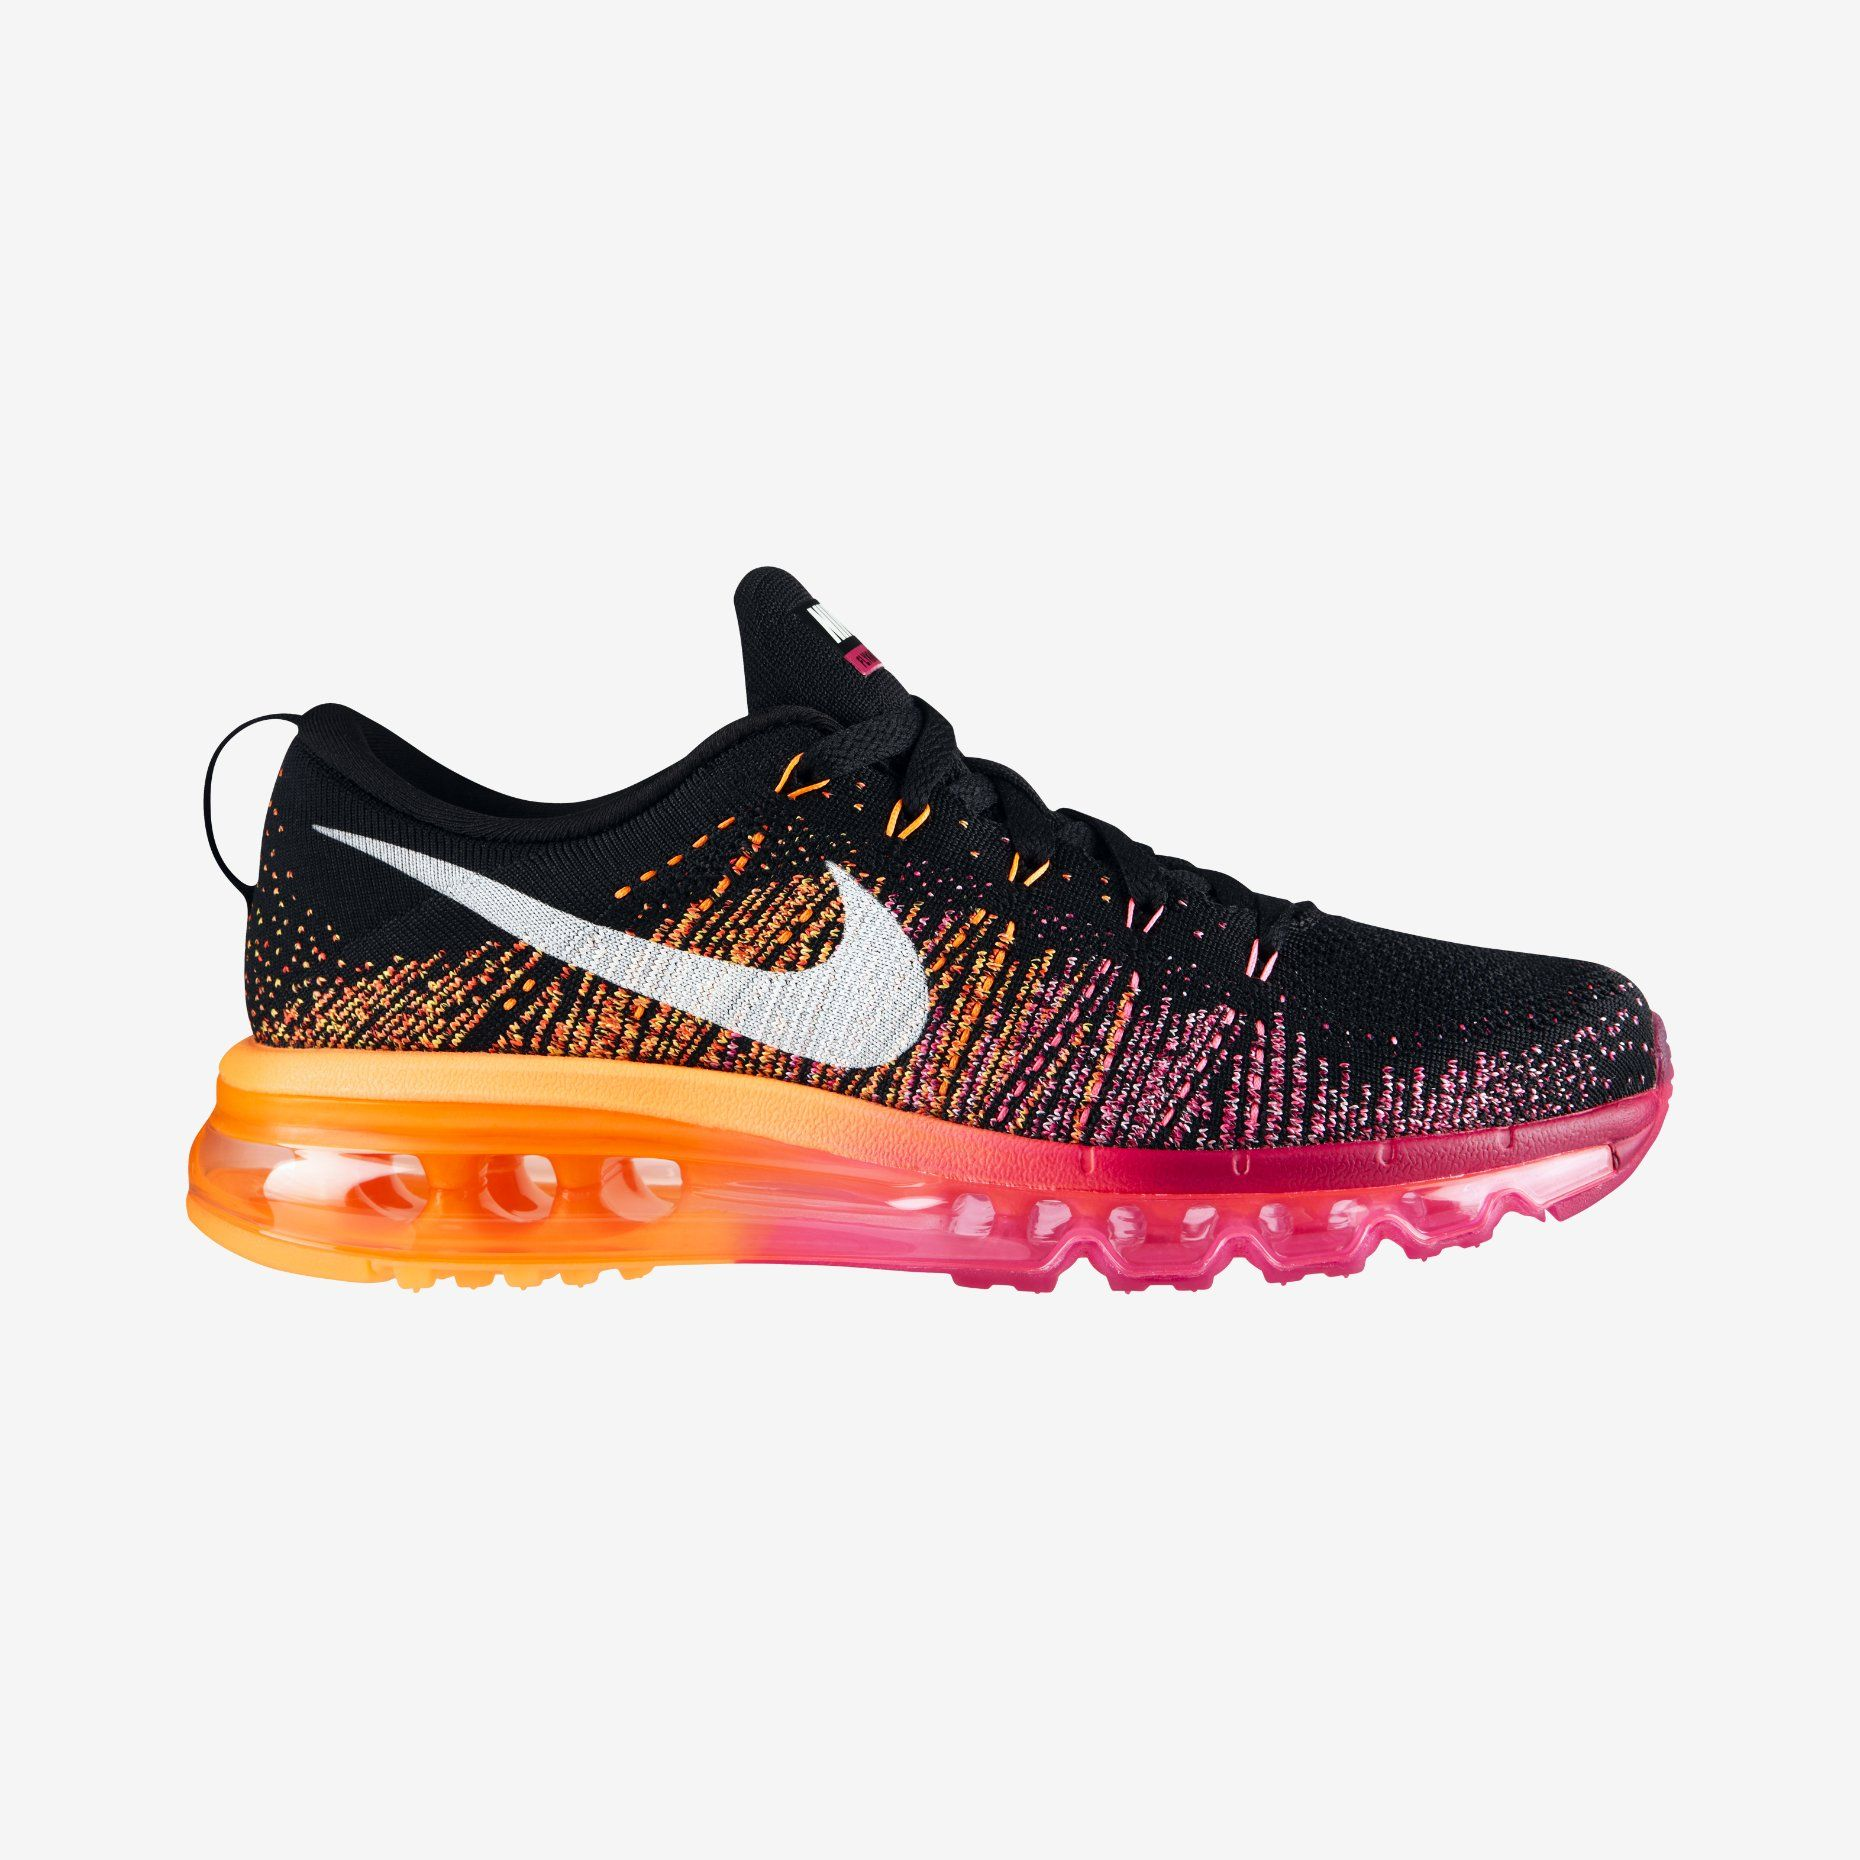 Look What I Found At Nike Online Womens Running Shoes Running Shoes Nike Free Shoes